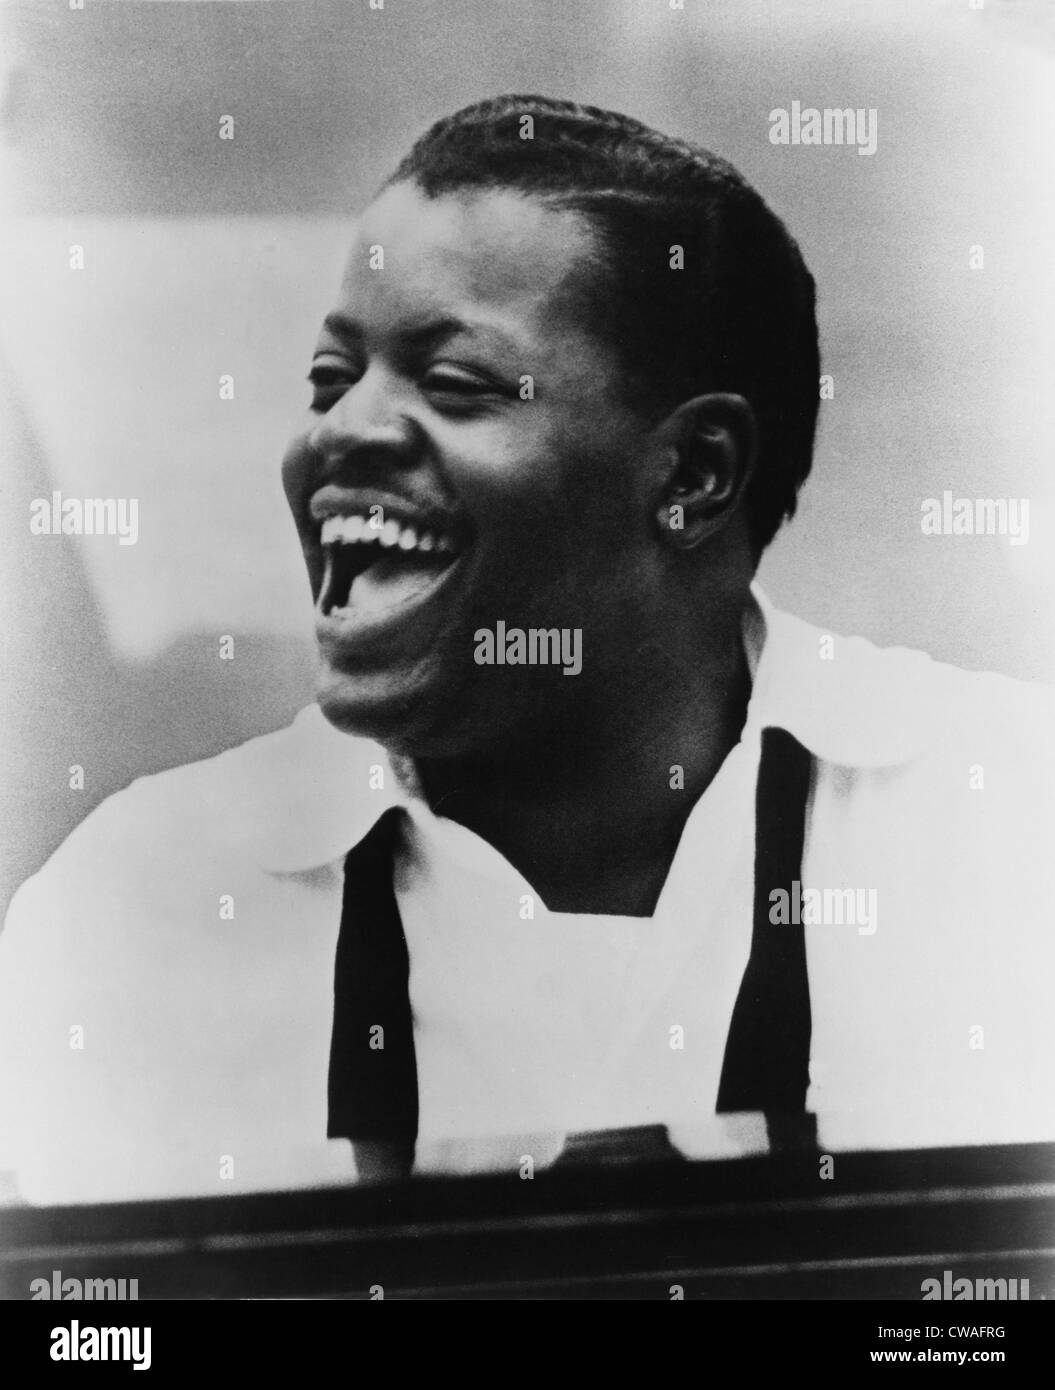 Oscar Peterson (1925-2007) at piano in 1963. - Stock Image